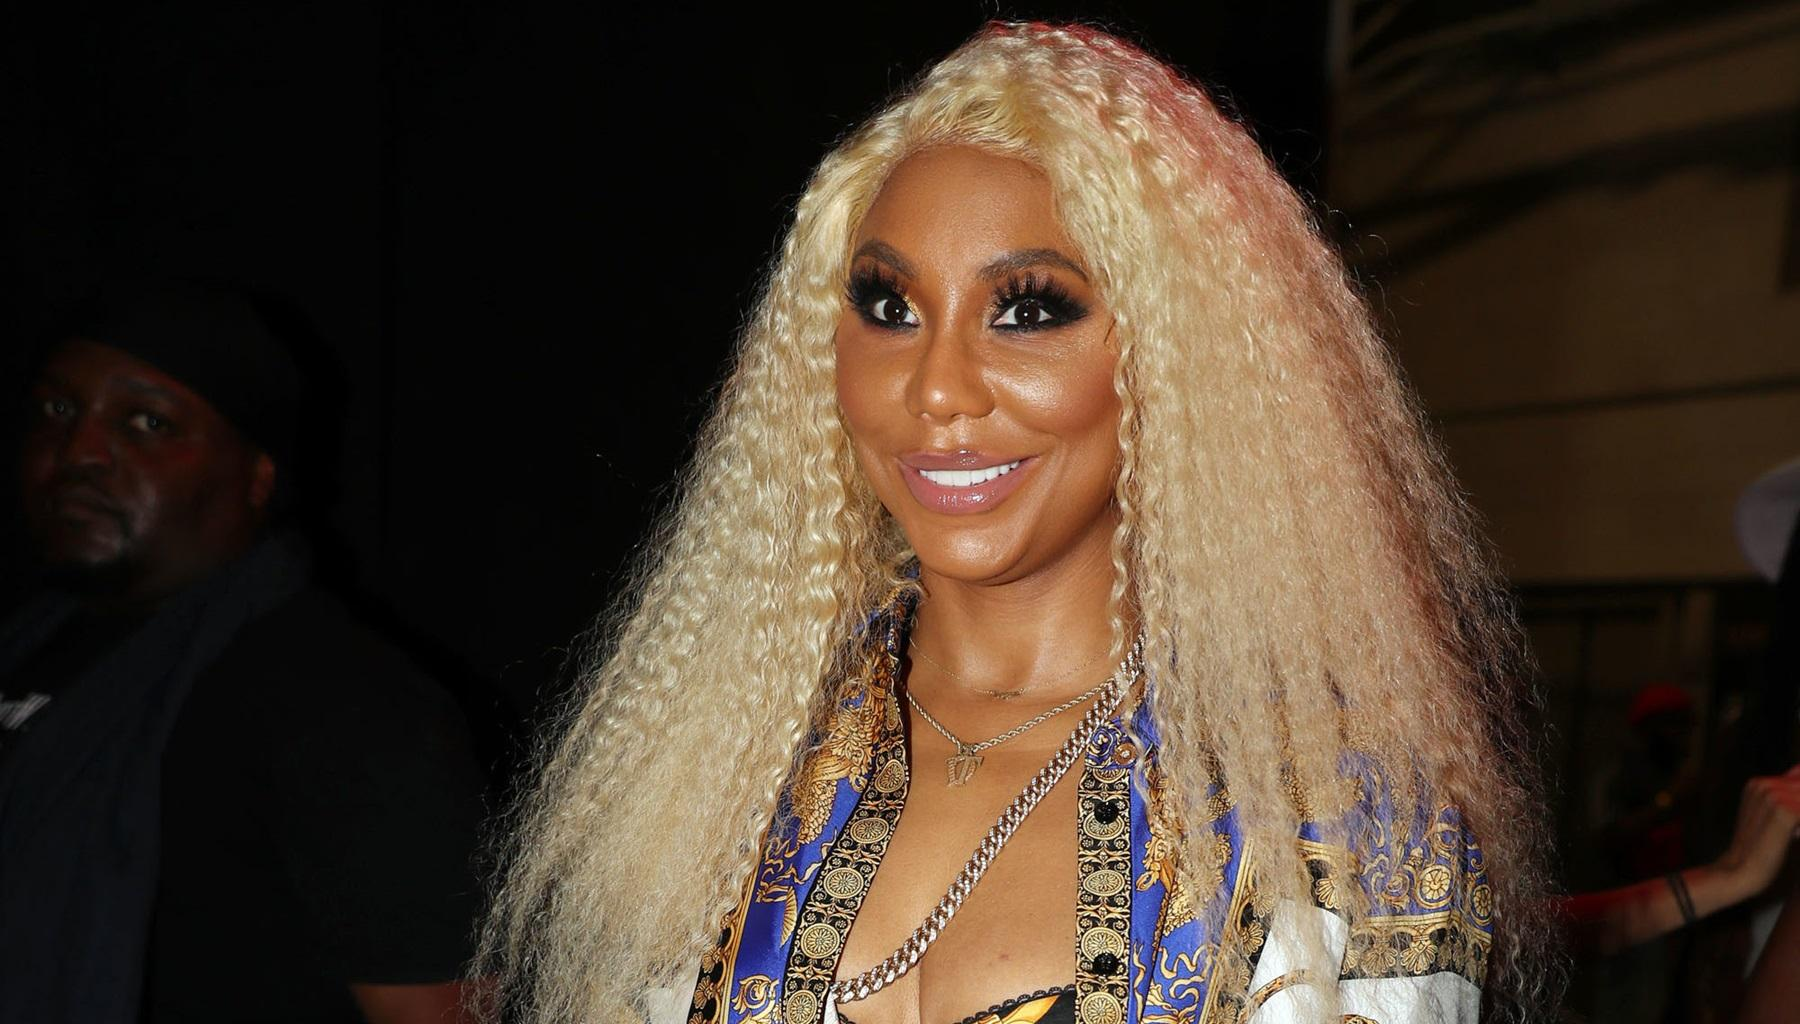 Tamar Braxton Says She Had An Anxiety Attack After A Man Offered Her Drugs While On A Plane -- Critics Slam David Adefeso's GF's Reaction